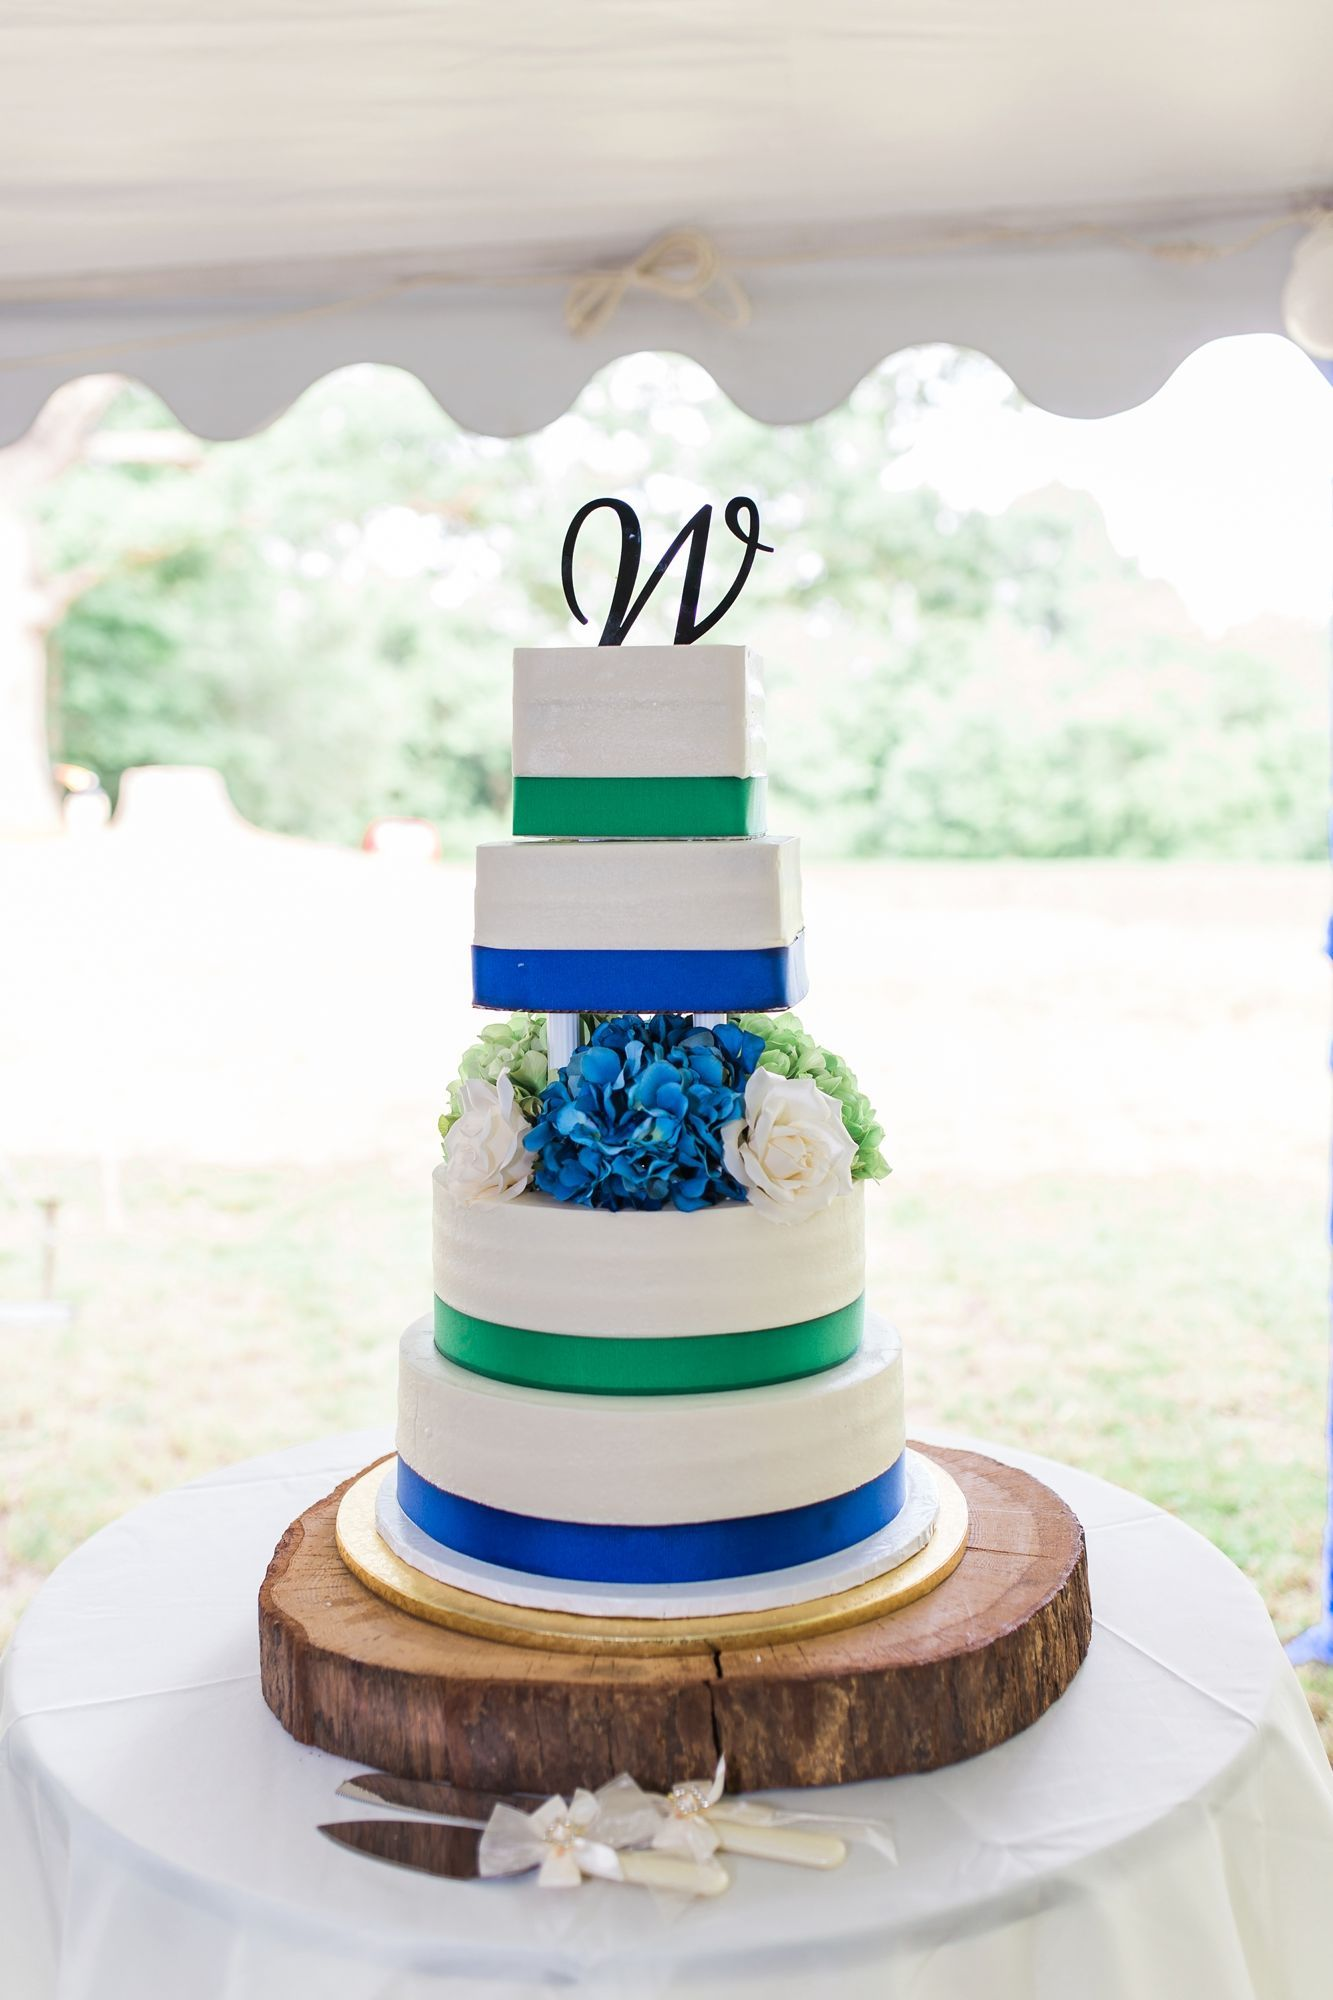 Blue, Green and White Wedding Cake | Wedding cake | Pinterest ...